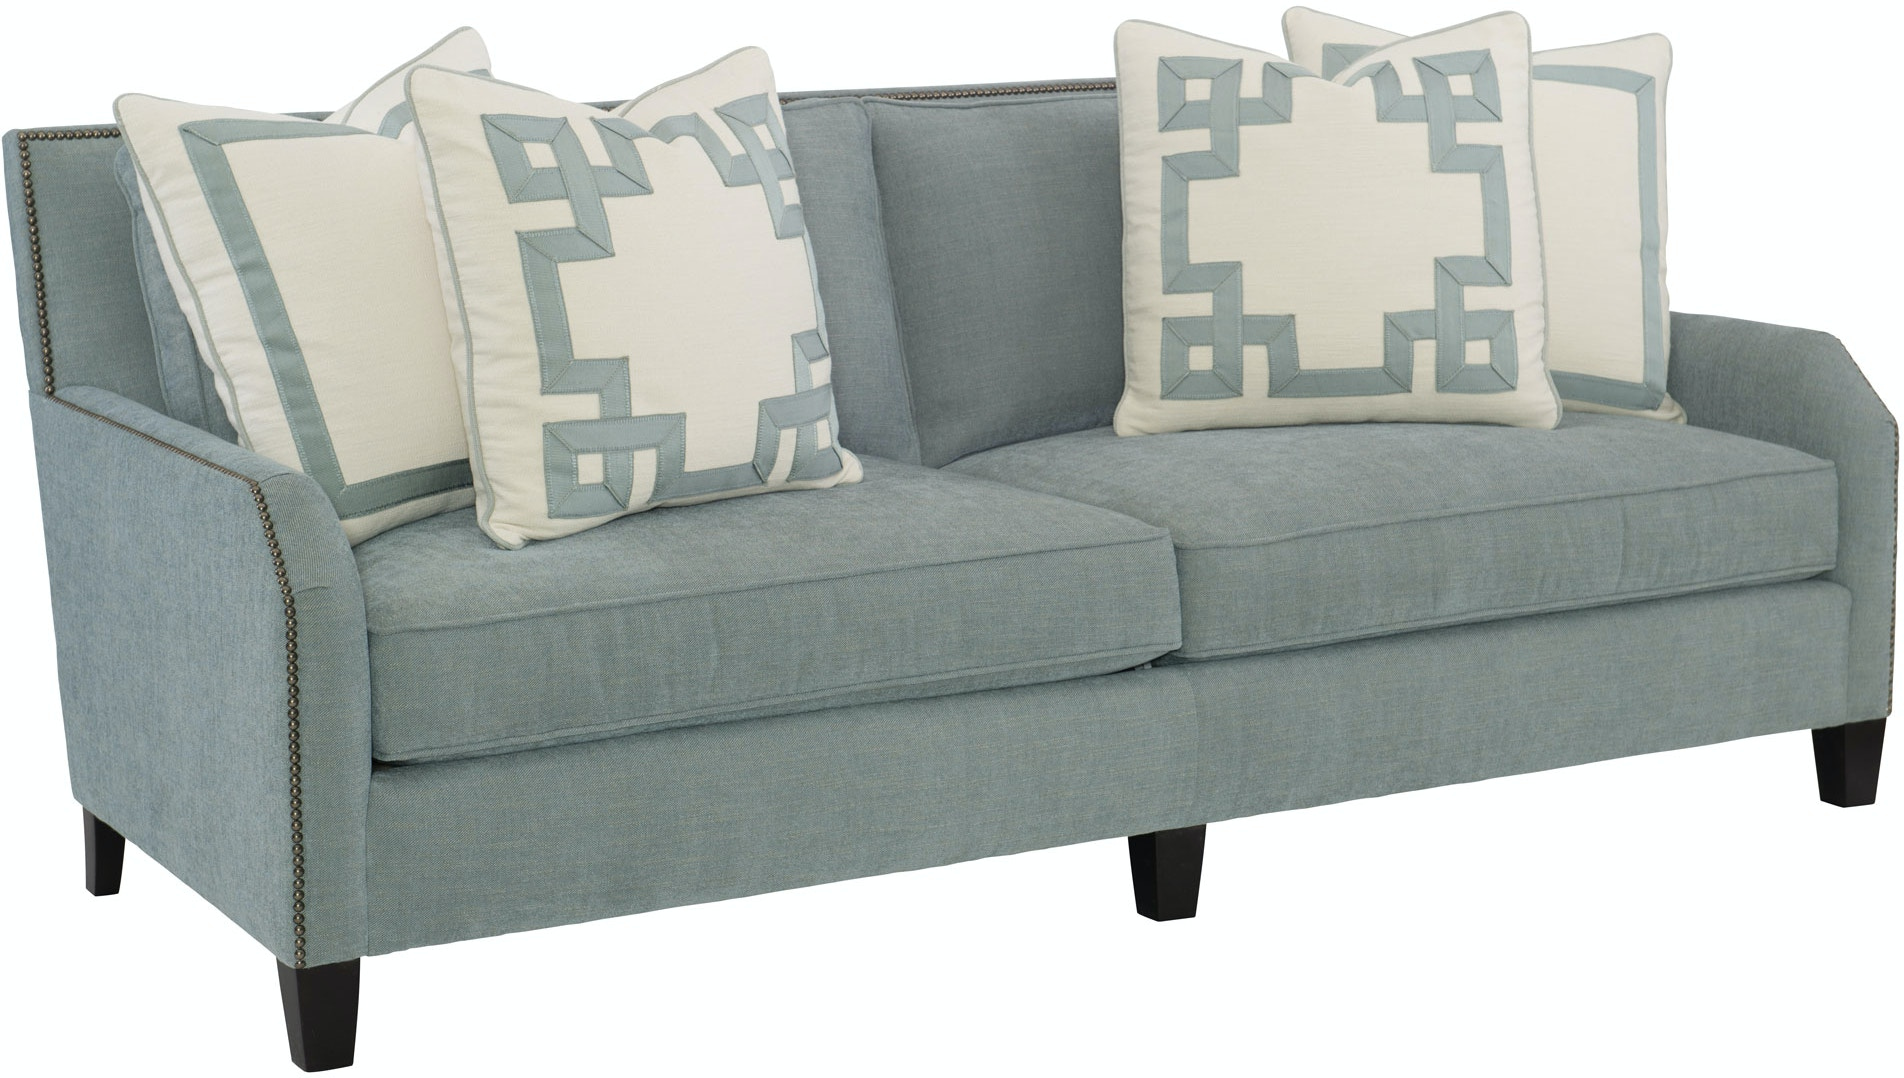 Bernhardt Furniture B1217 Living Room Maxine Sofa